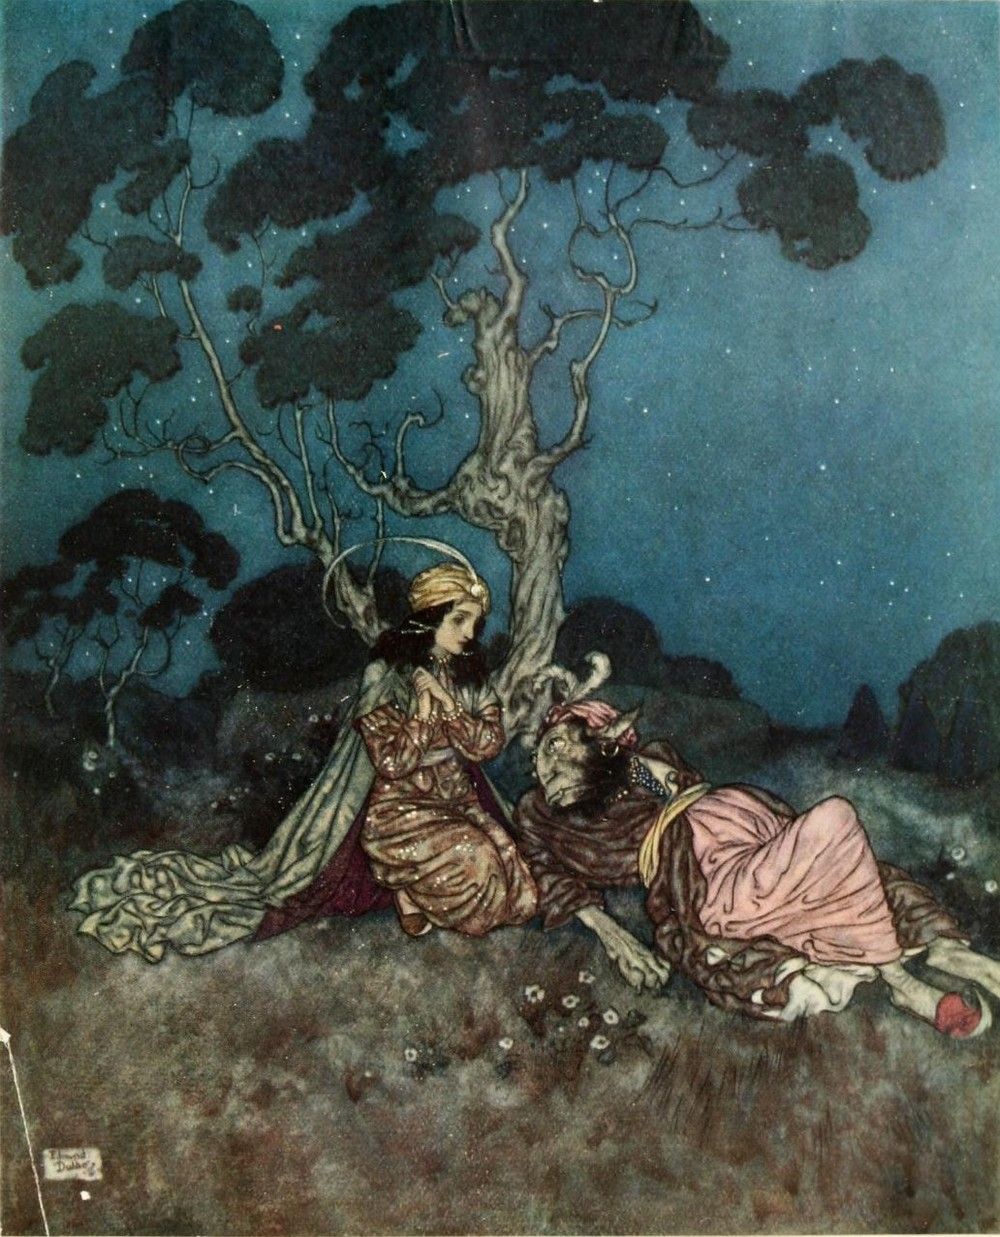 The project gutenberg ebook of the sleeping beauty and other fairy the project gutenberg ebook of the sleeping beauty and other fairy tales by sir arthur quiller couch fandeluxe Images